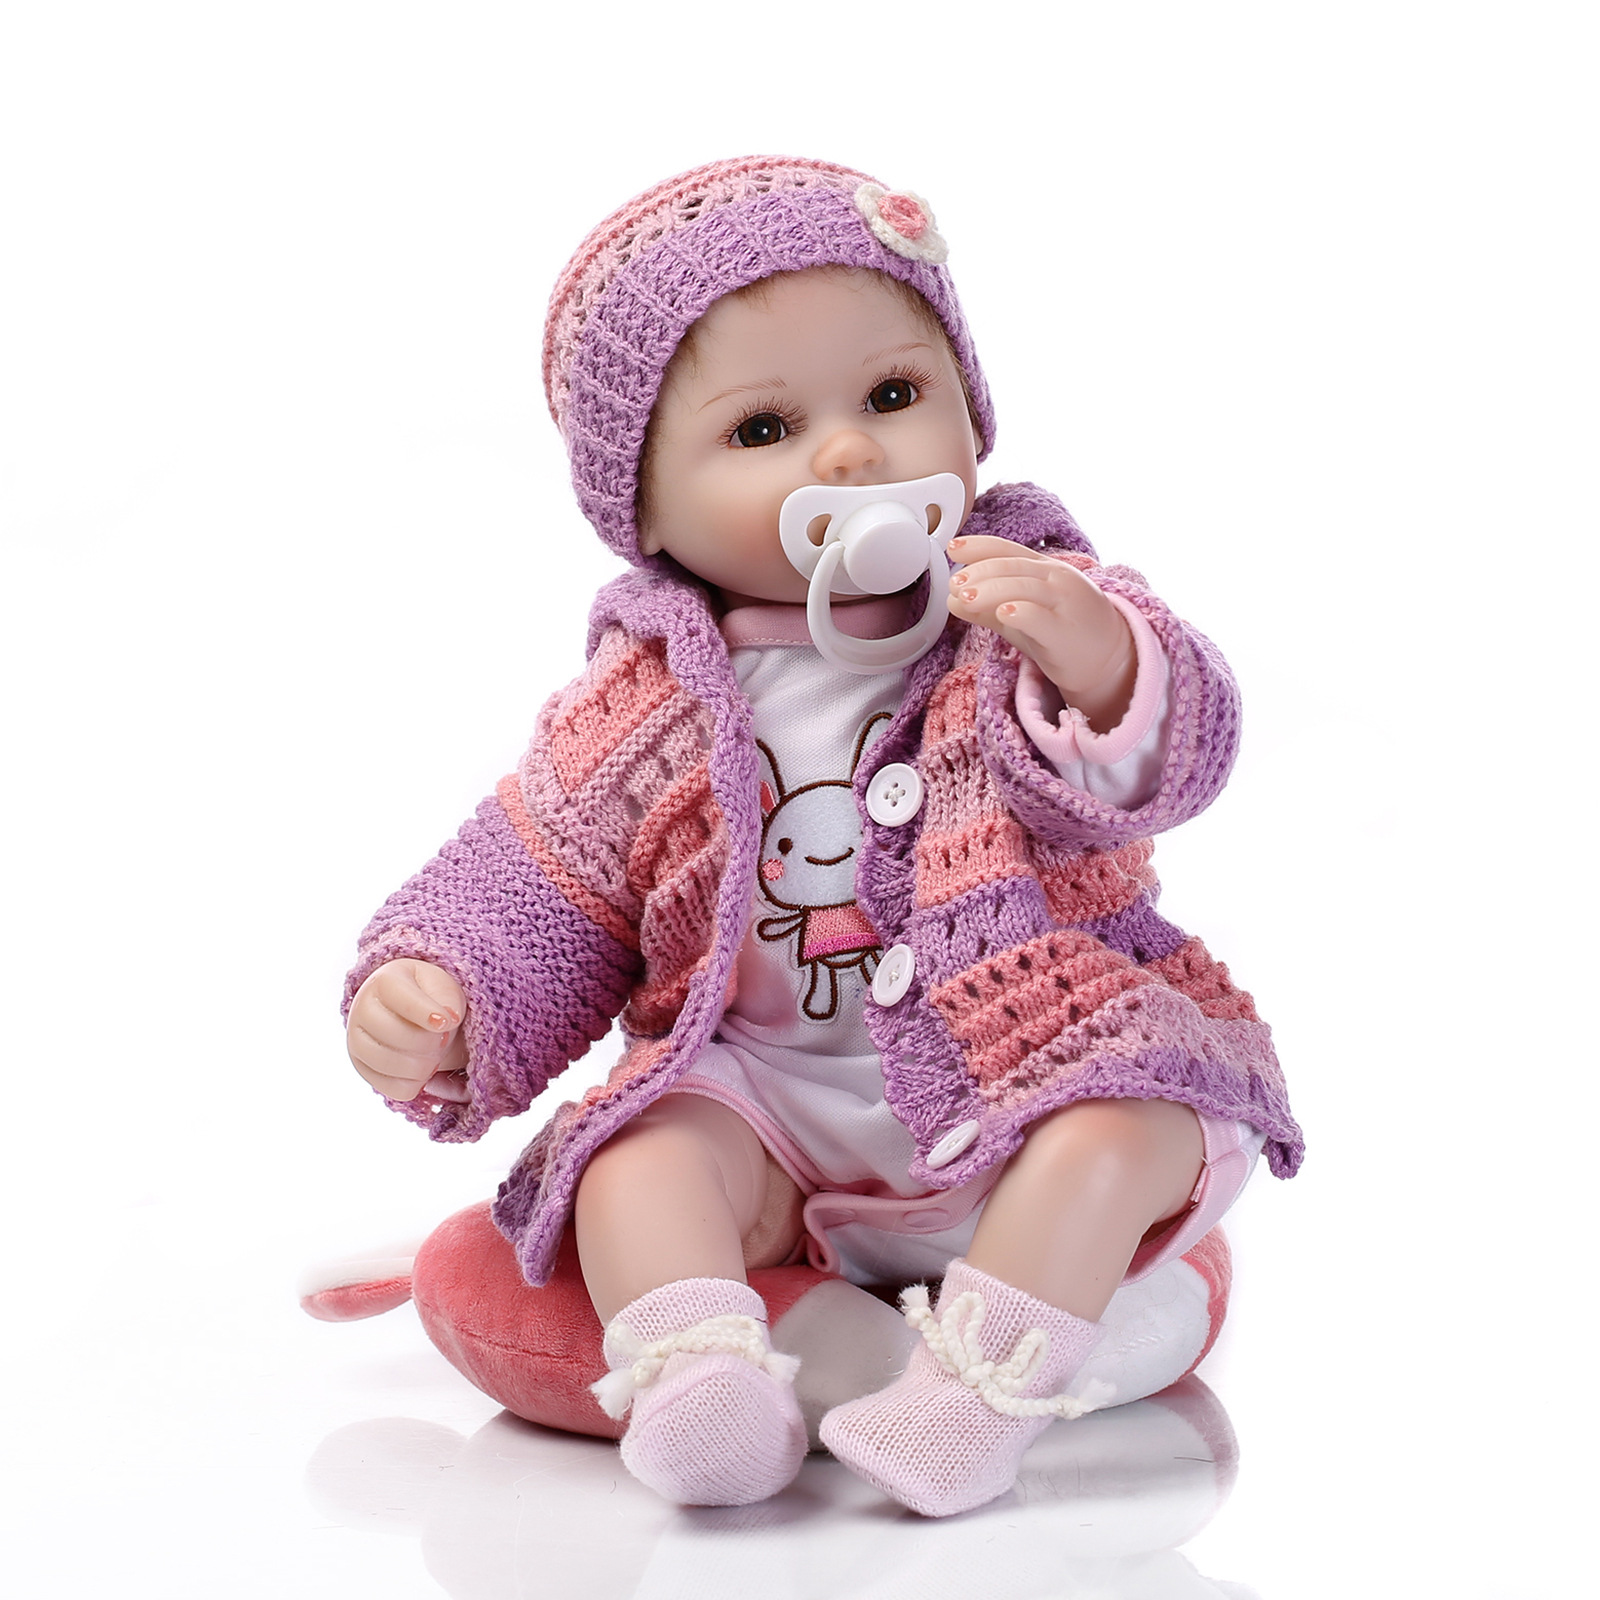 Purple Cute Reborn Baby Doll Soft Silcone Infant Realiste Soft Safe Real Touch Bath 40cm Christmas Gift Friends Girl Toys AA50DT